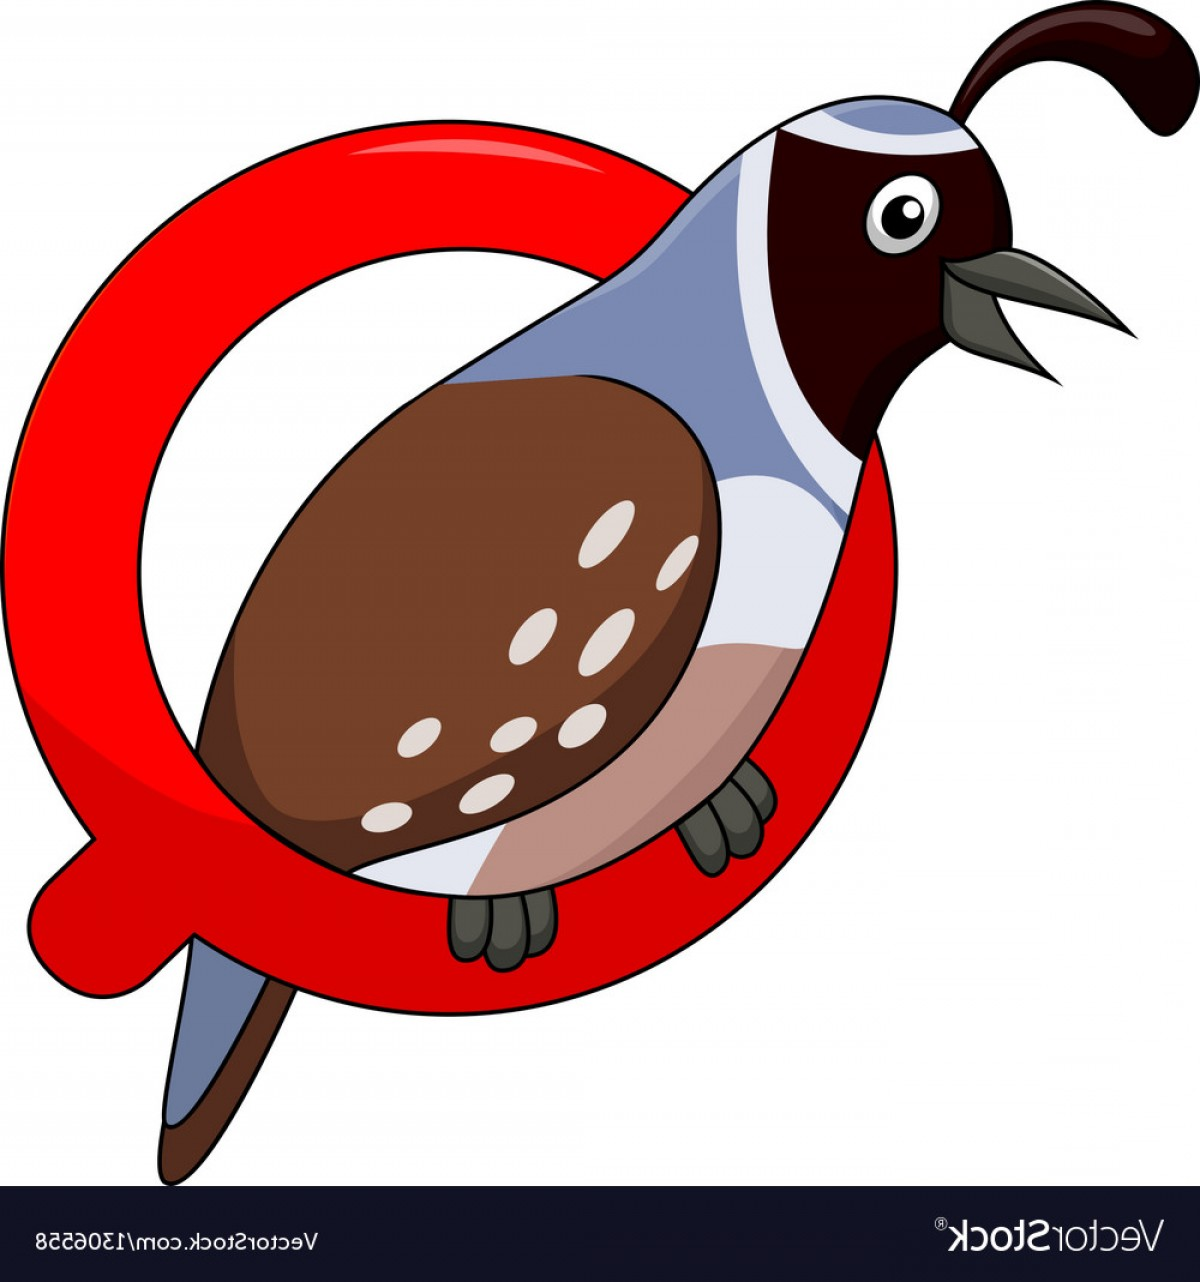 Quail Vector Art: Alphabet Q With Quail Cartoon Vector